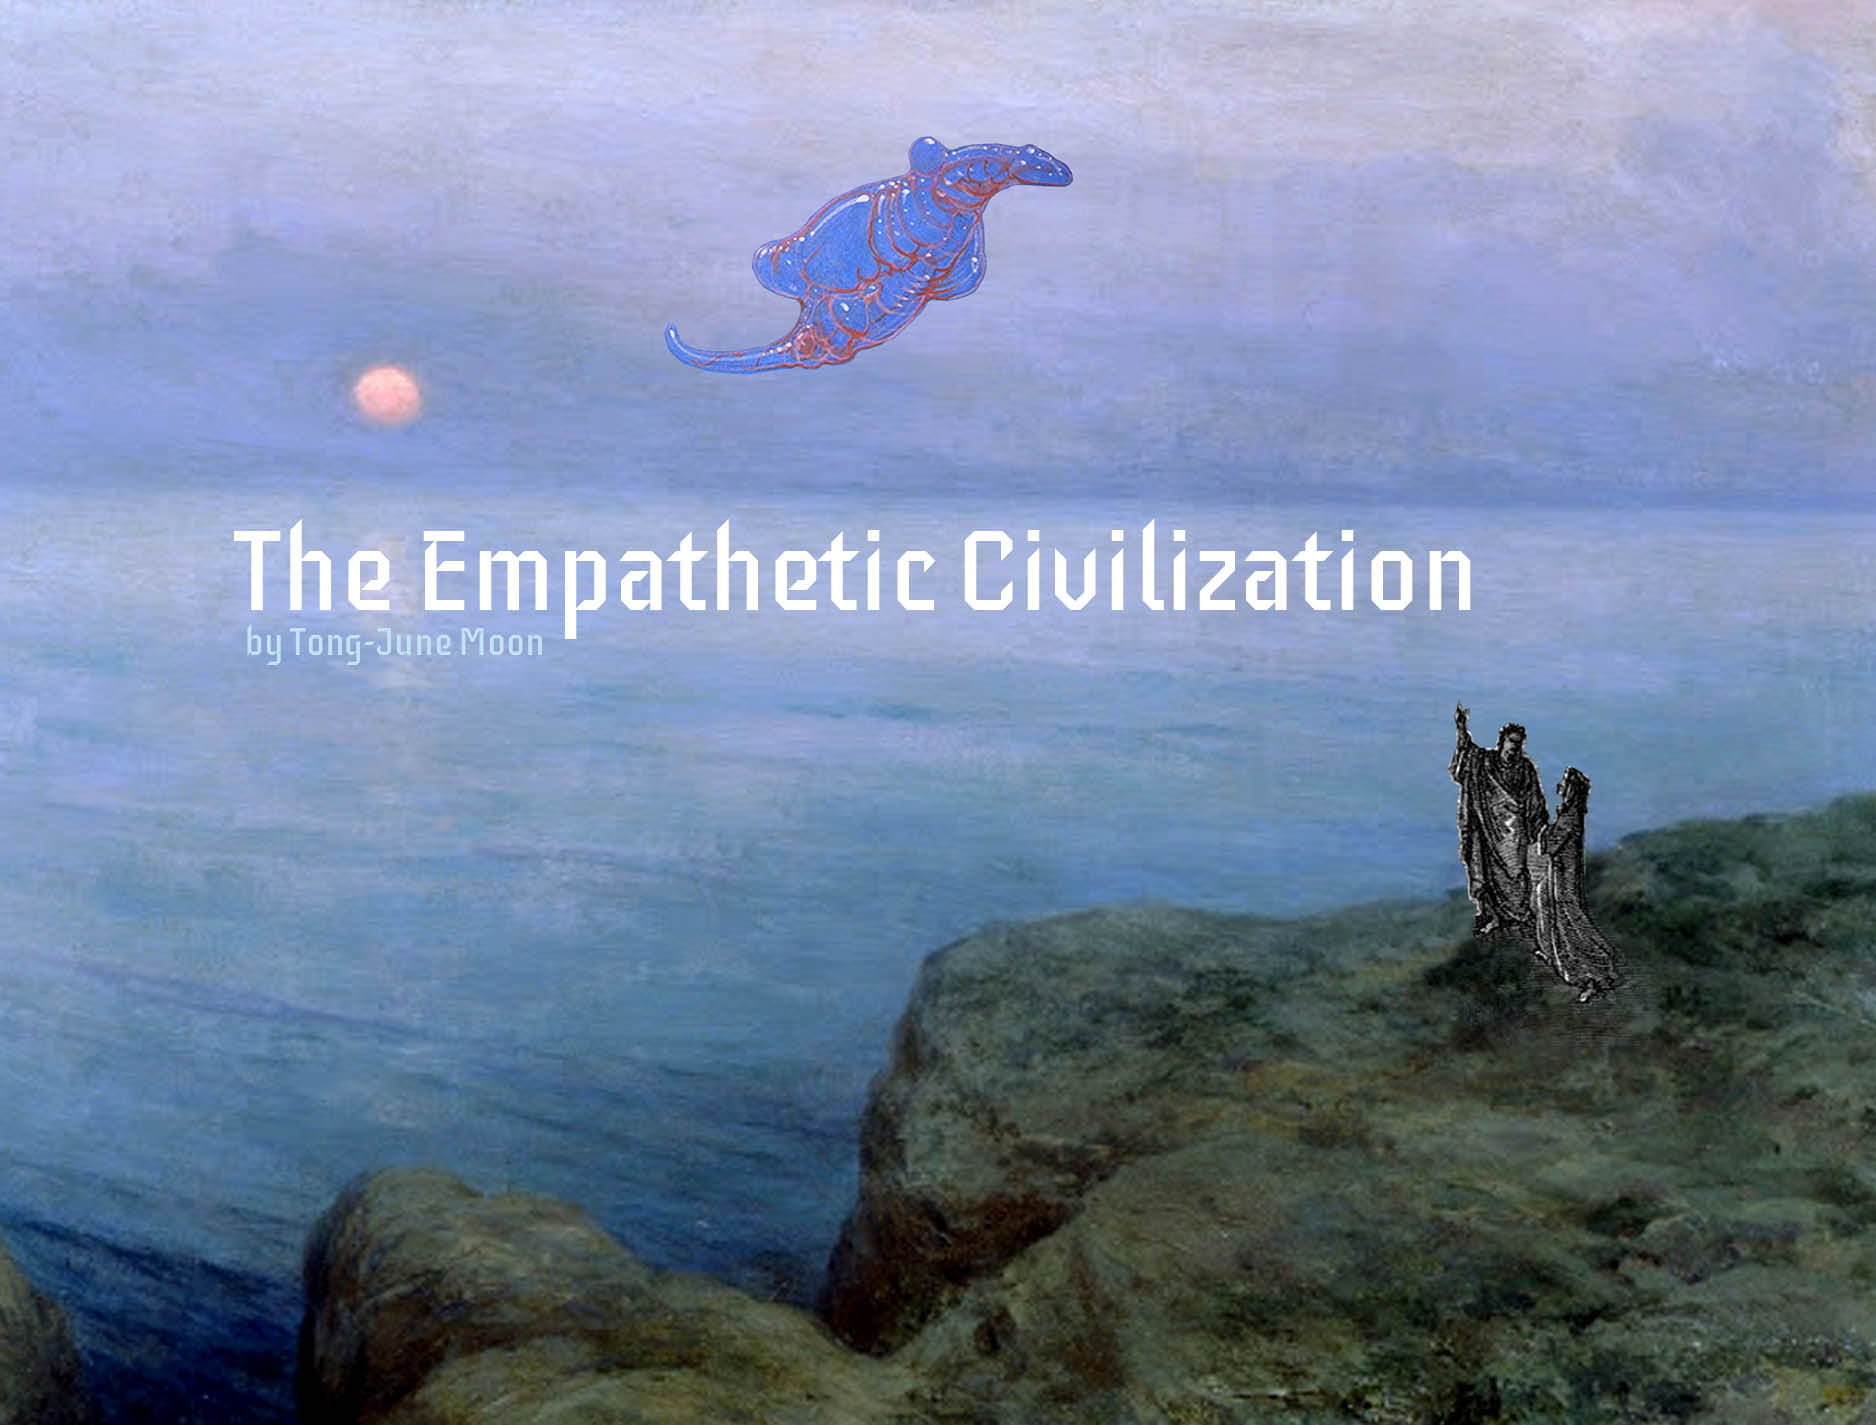 The Empathetic Civilization_Sept 2018_R.jpg